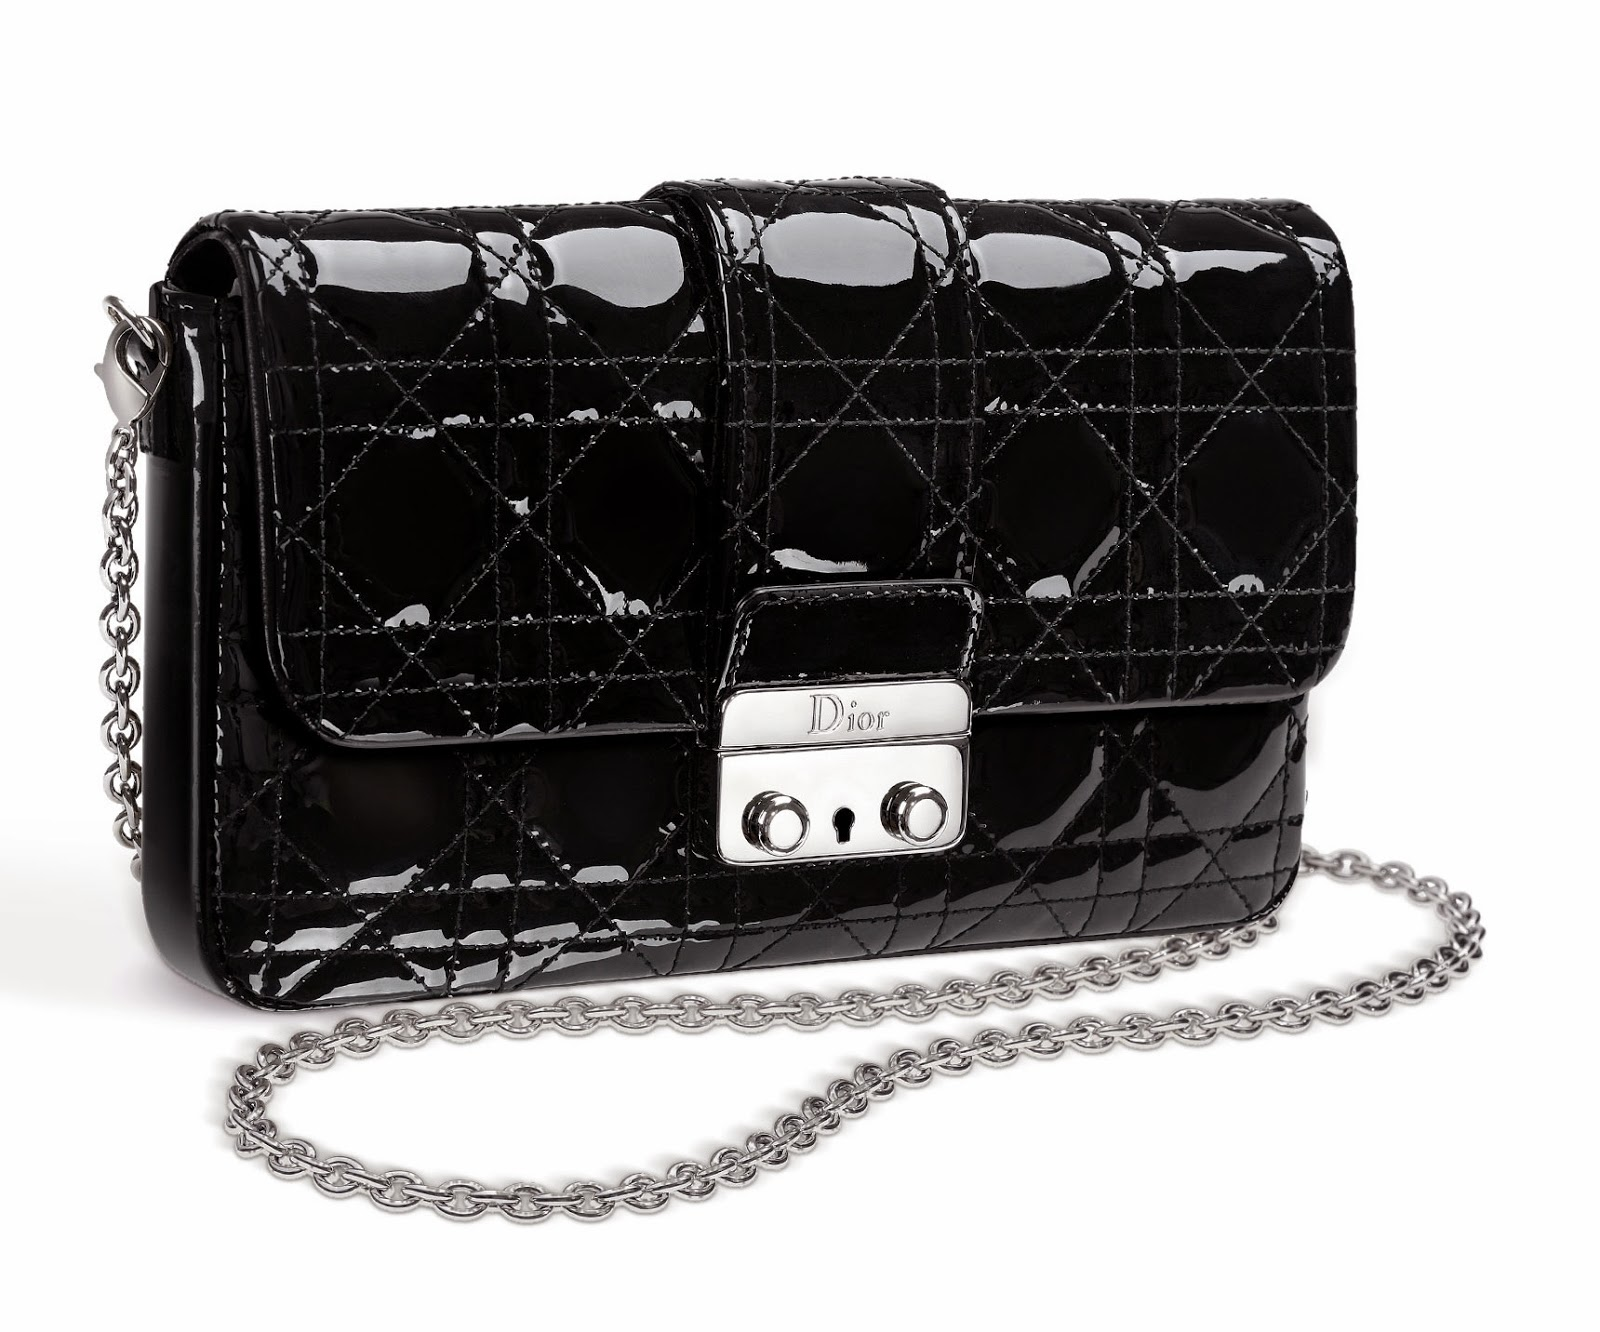 Large Leather  New Look  Promenade Pouch In Black Patent Lambskin.   d98f6b3cca